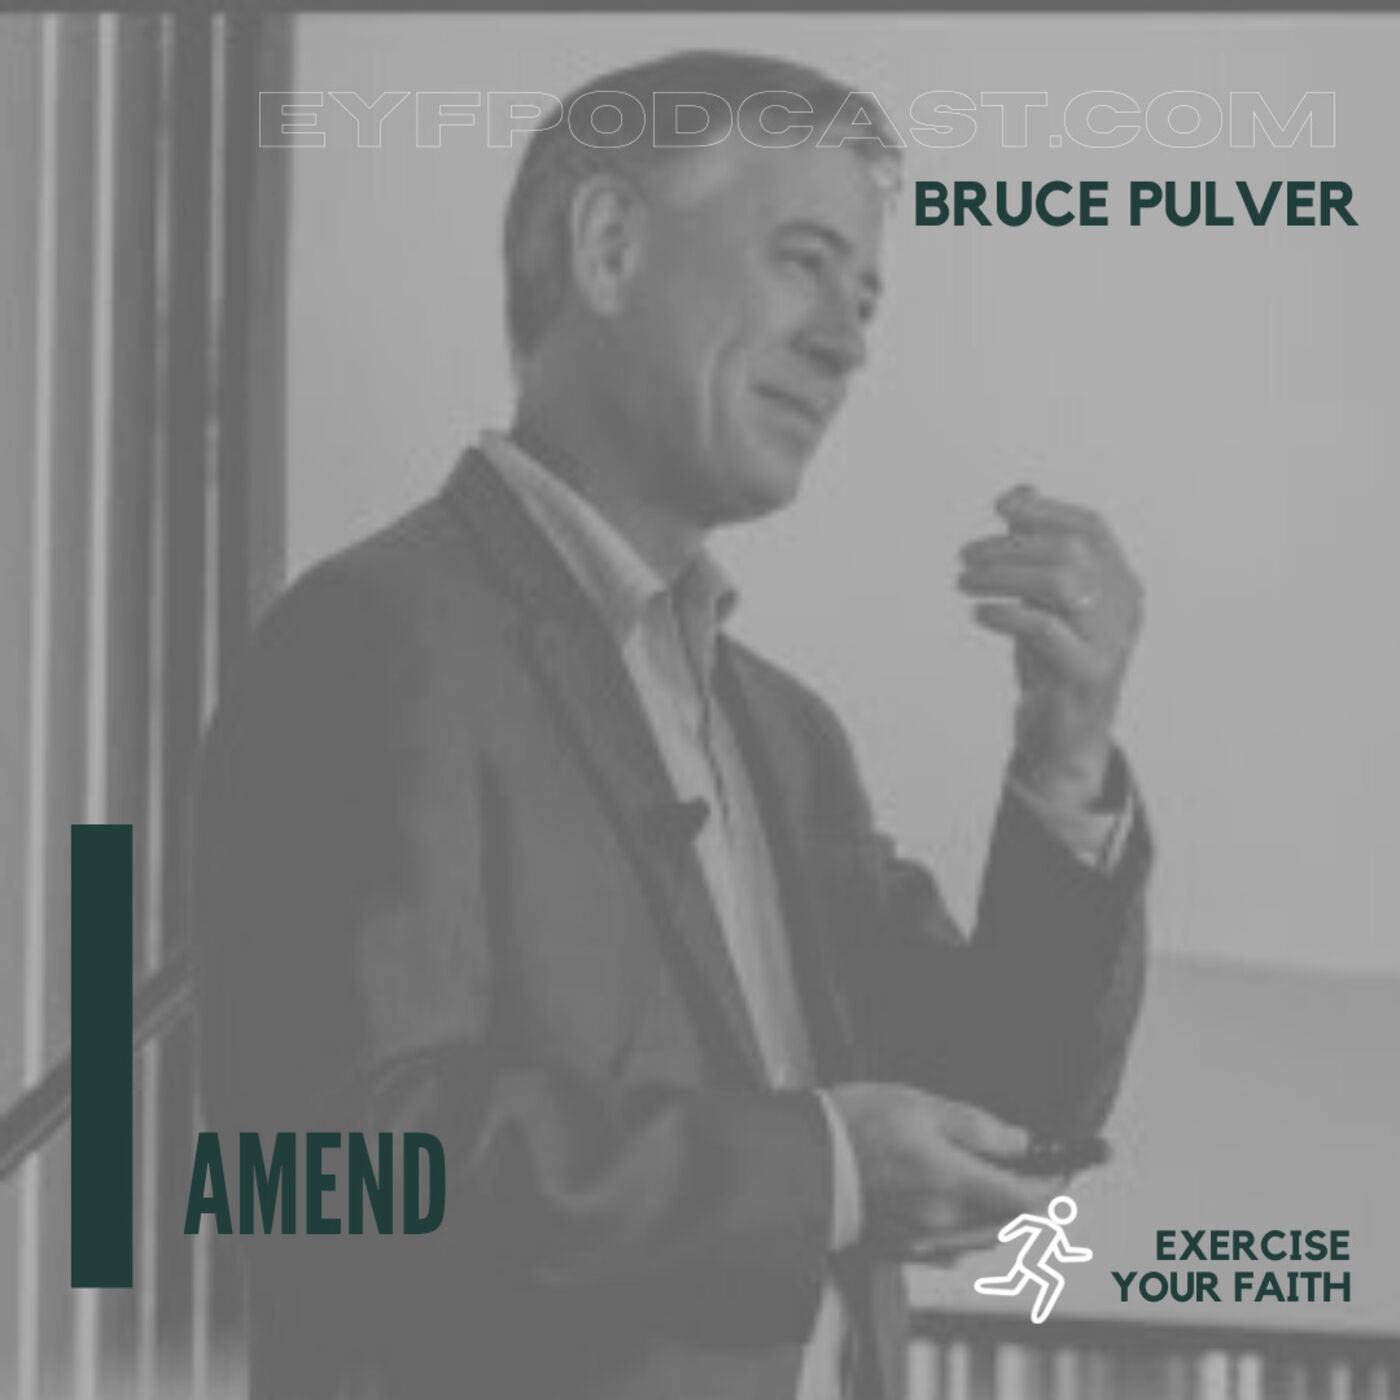 EYFPodcast- Exercise Your Faith with Bruce Pulver as we AMEND the soil of God's pastures